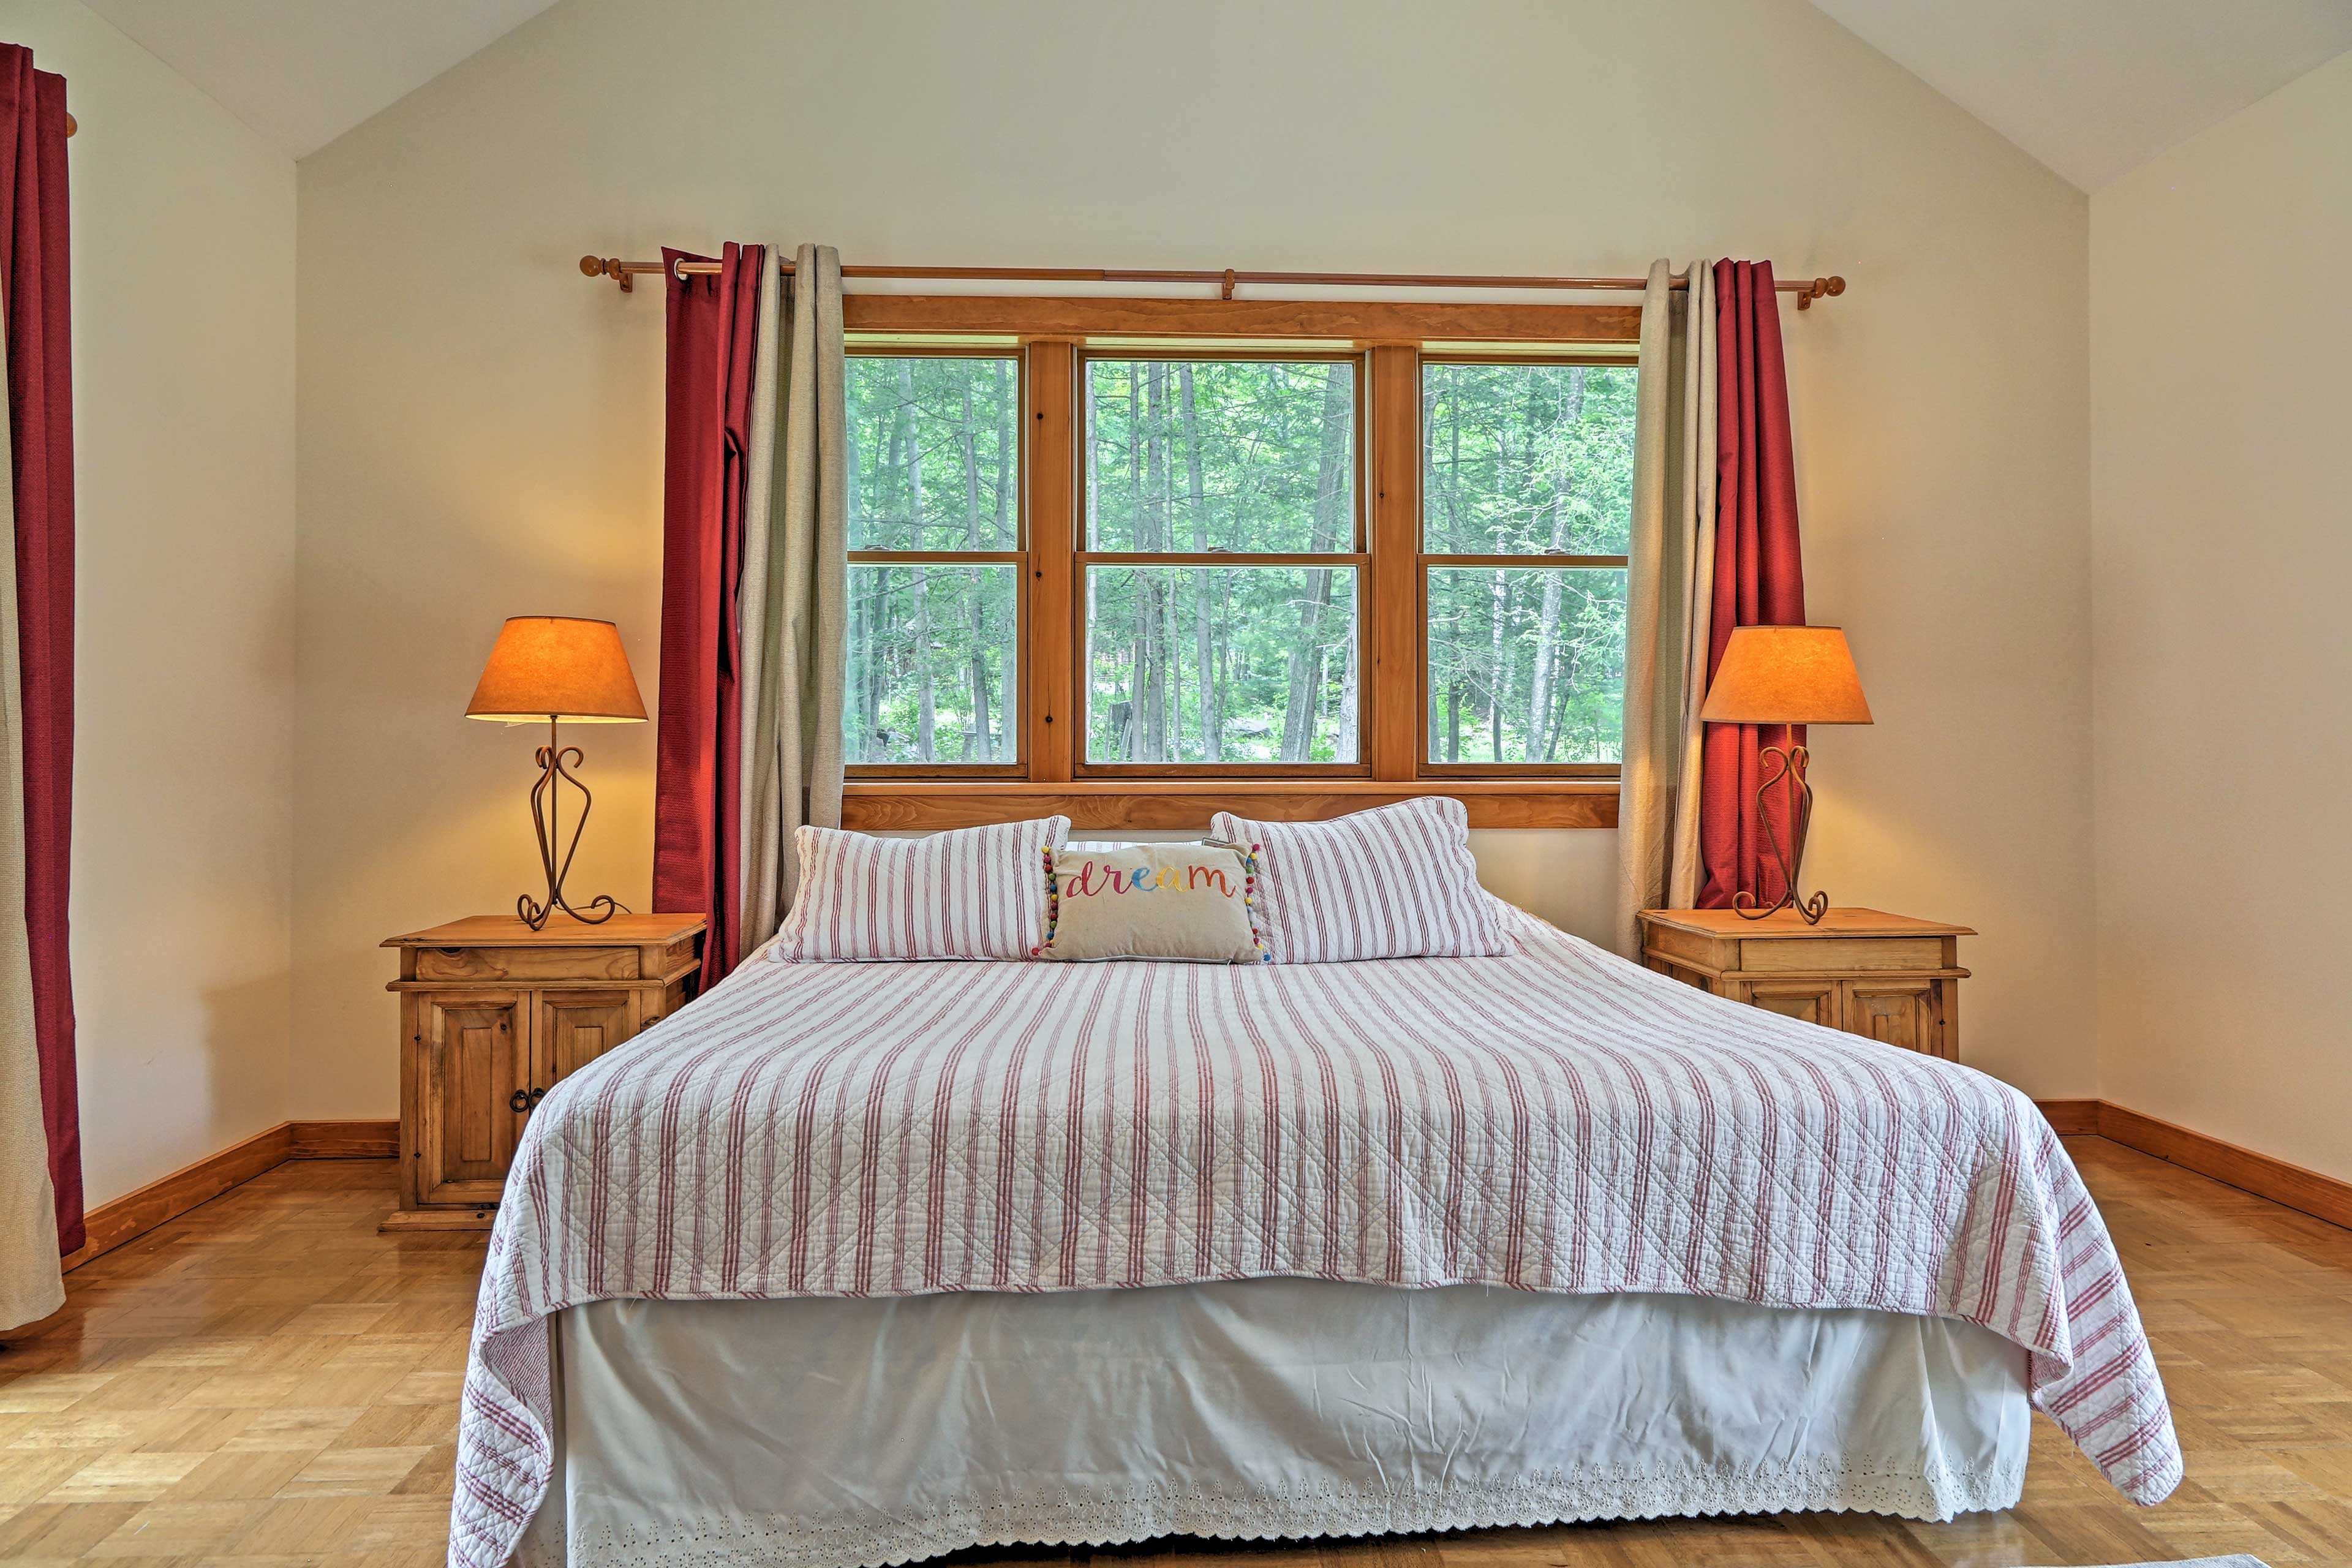 Retreat to the master bedroom for a replenishing night's sleep.